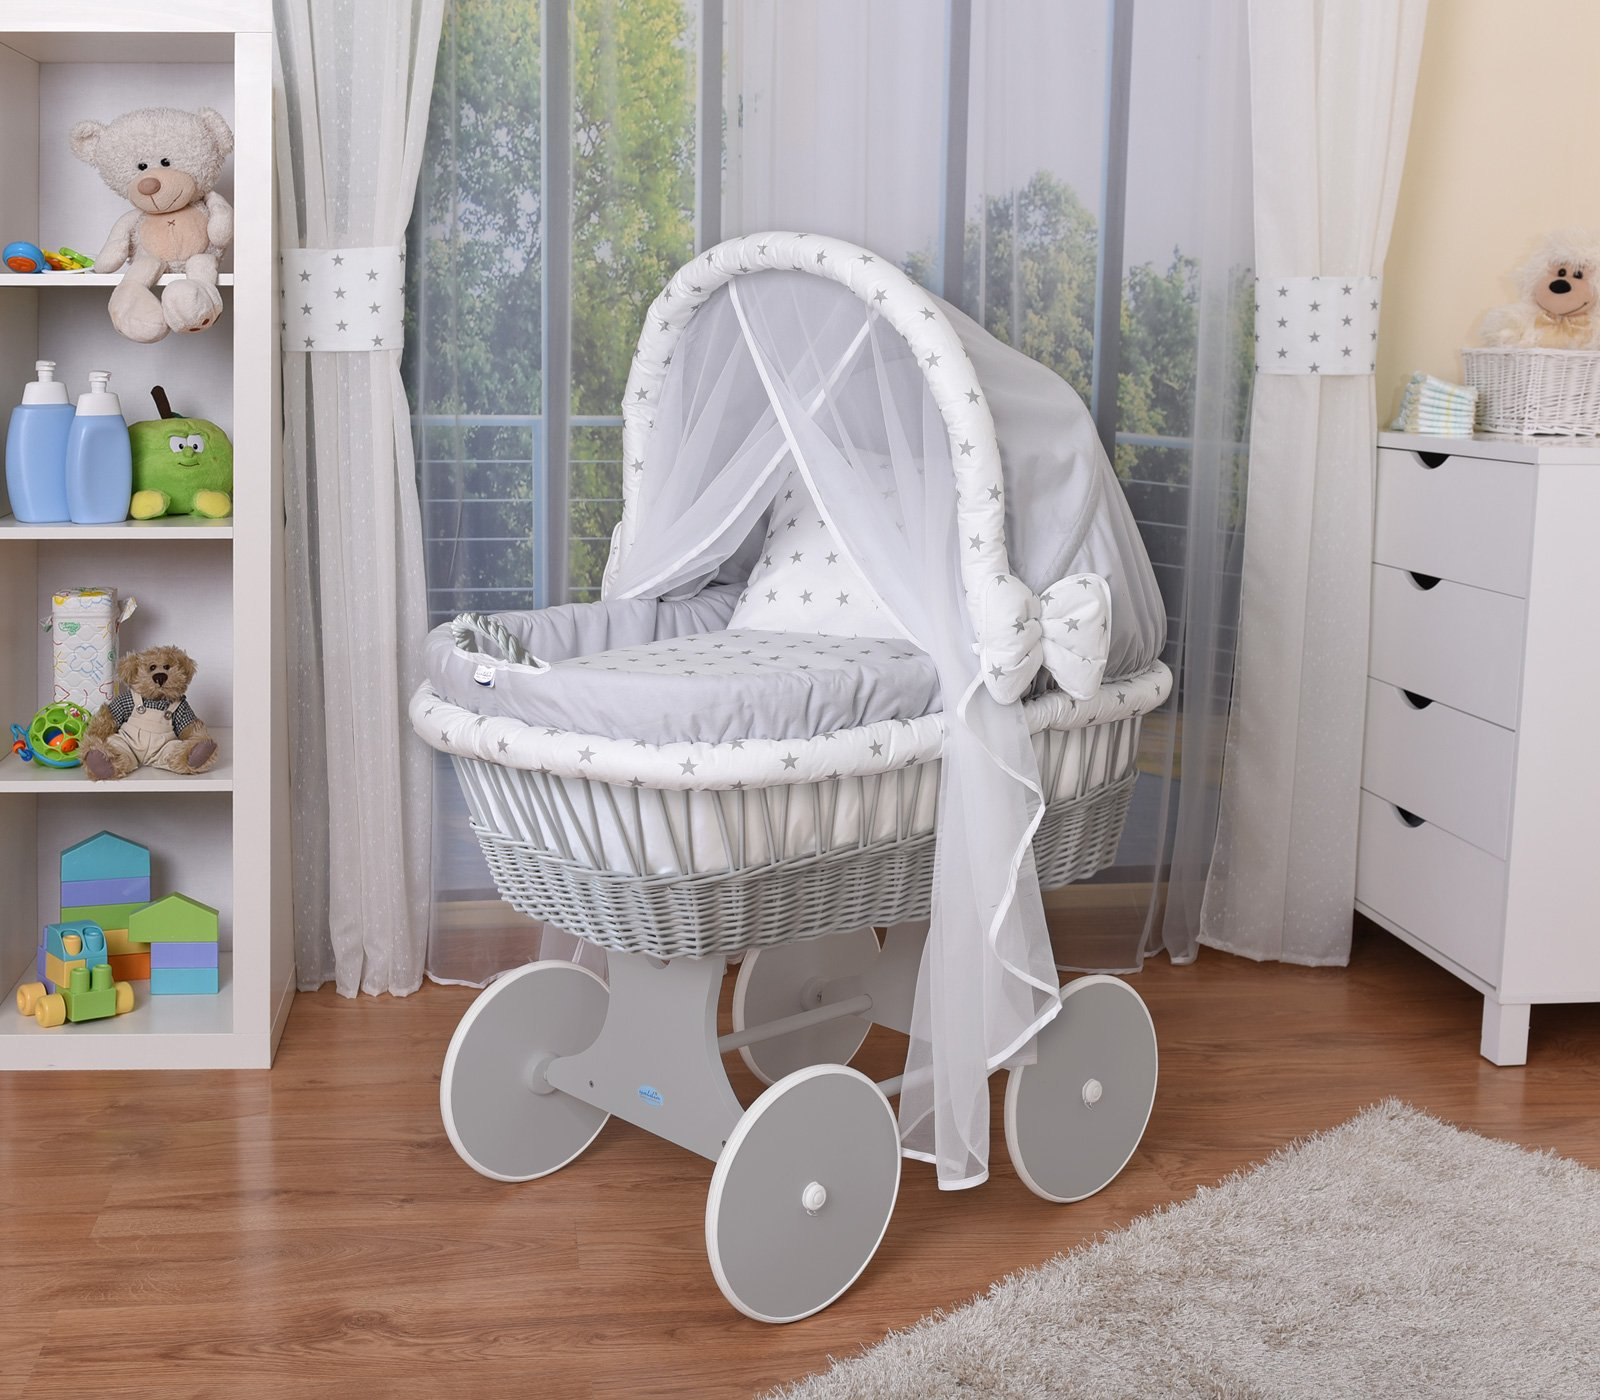 WALDIN Baby Wicker Cradle,Moses Basket,44 Models Available,Grey Painted Stand/Wheels,Textile Colour Grey/Grey Stars  For more models and colours on Amazon click on WALDIN under the title Bassinet complete with bedding and stand Certified to safety standard EN 1130-1/2 1